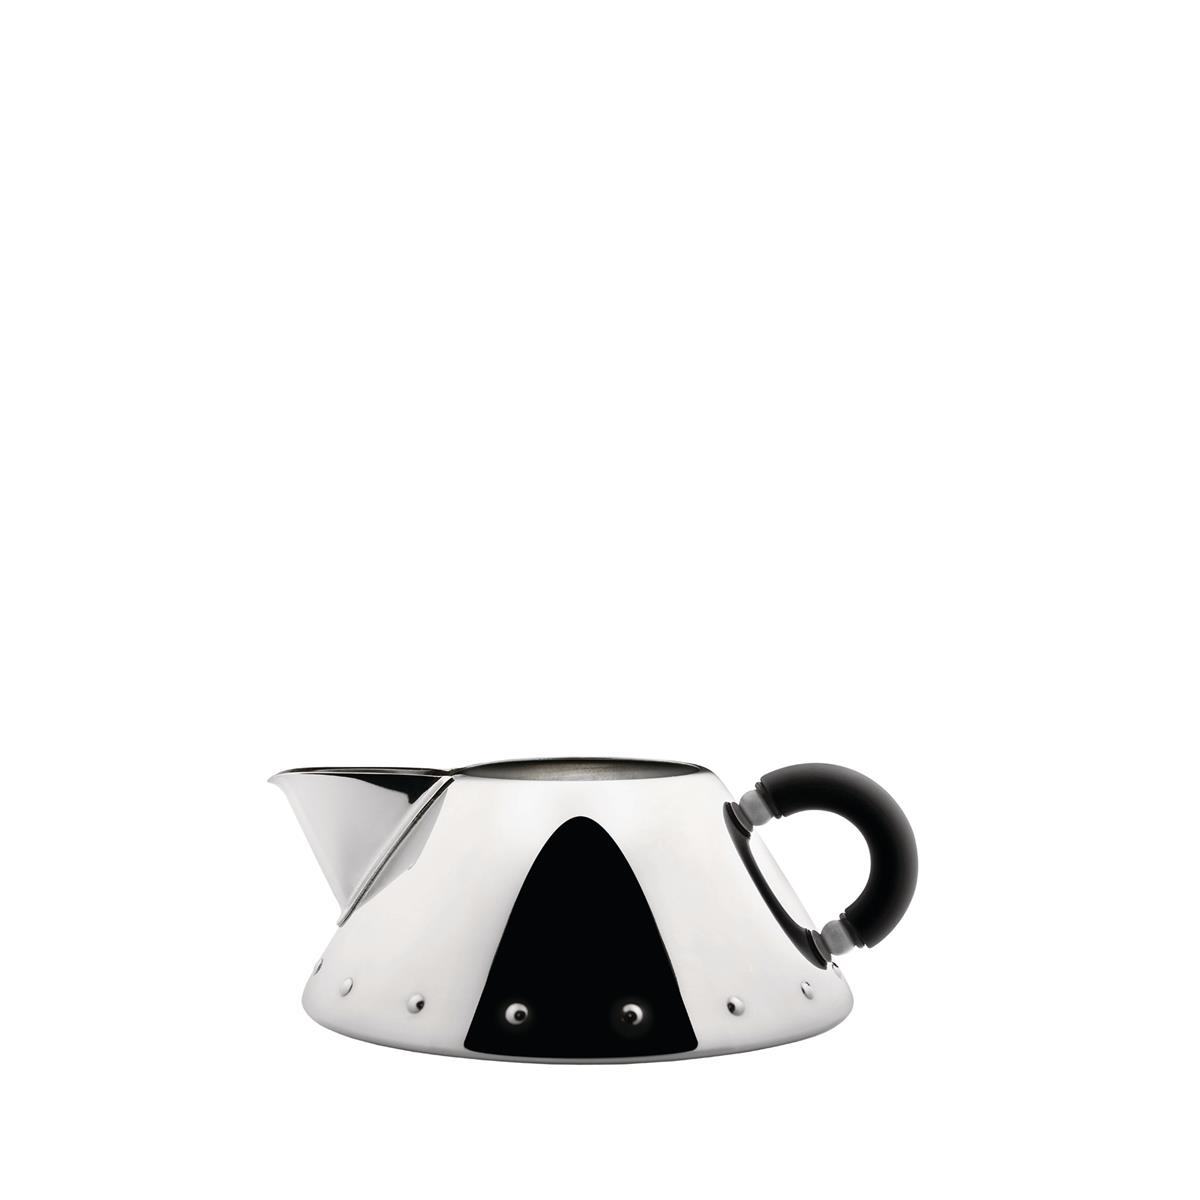 Alessi-Creamer in 18/10 stainless steel mirror polished with handle in PA, black